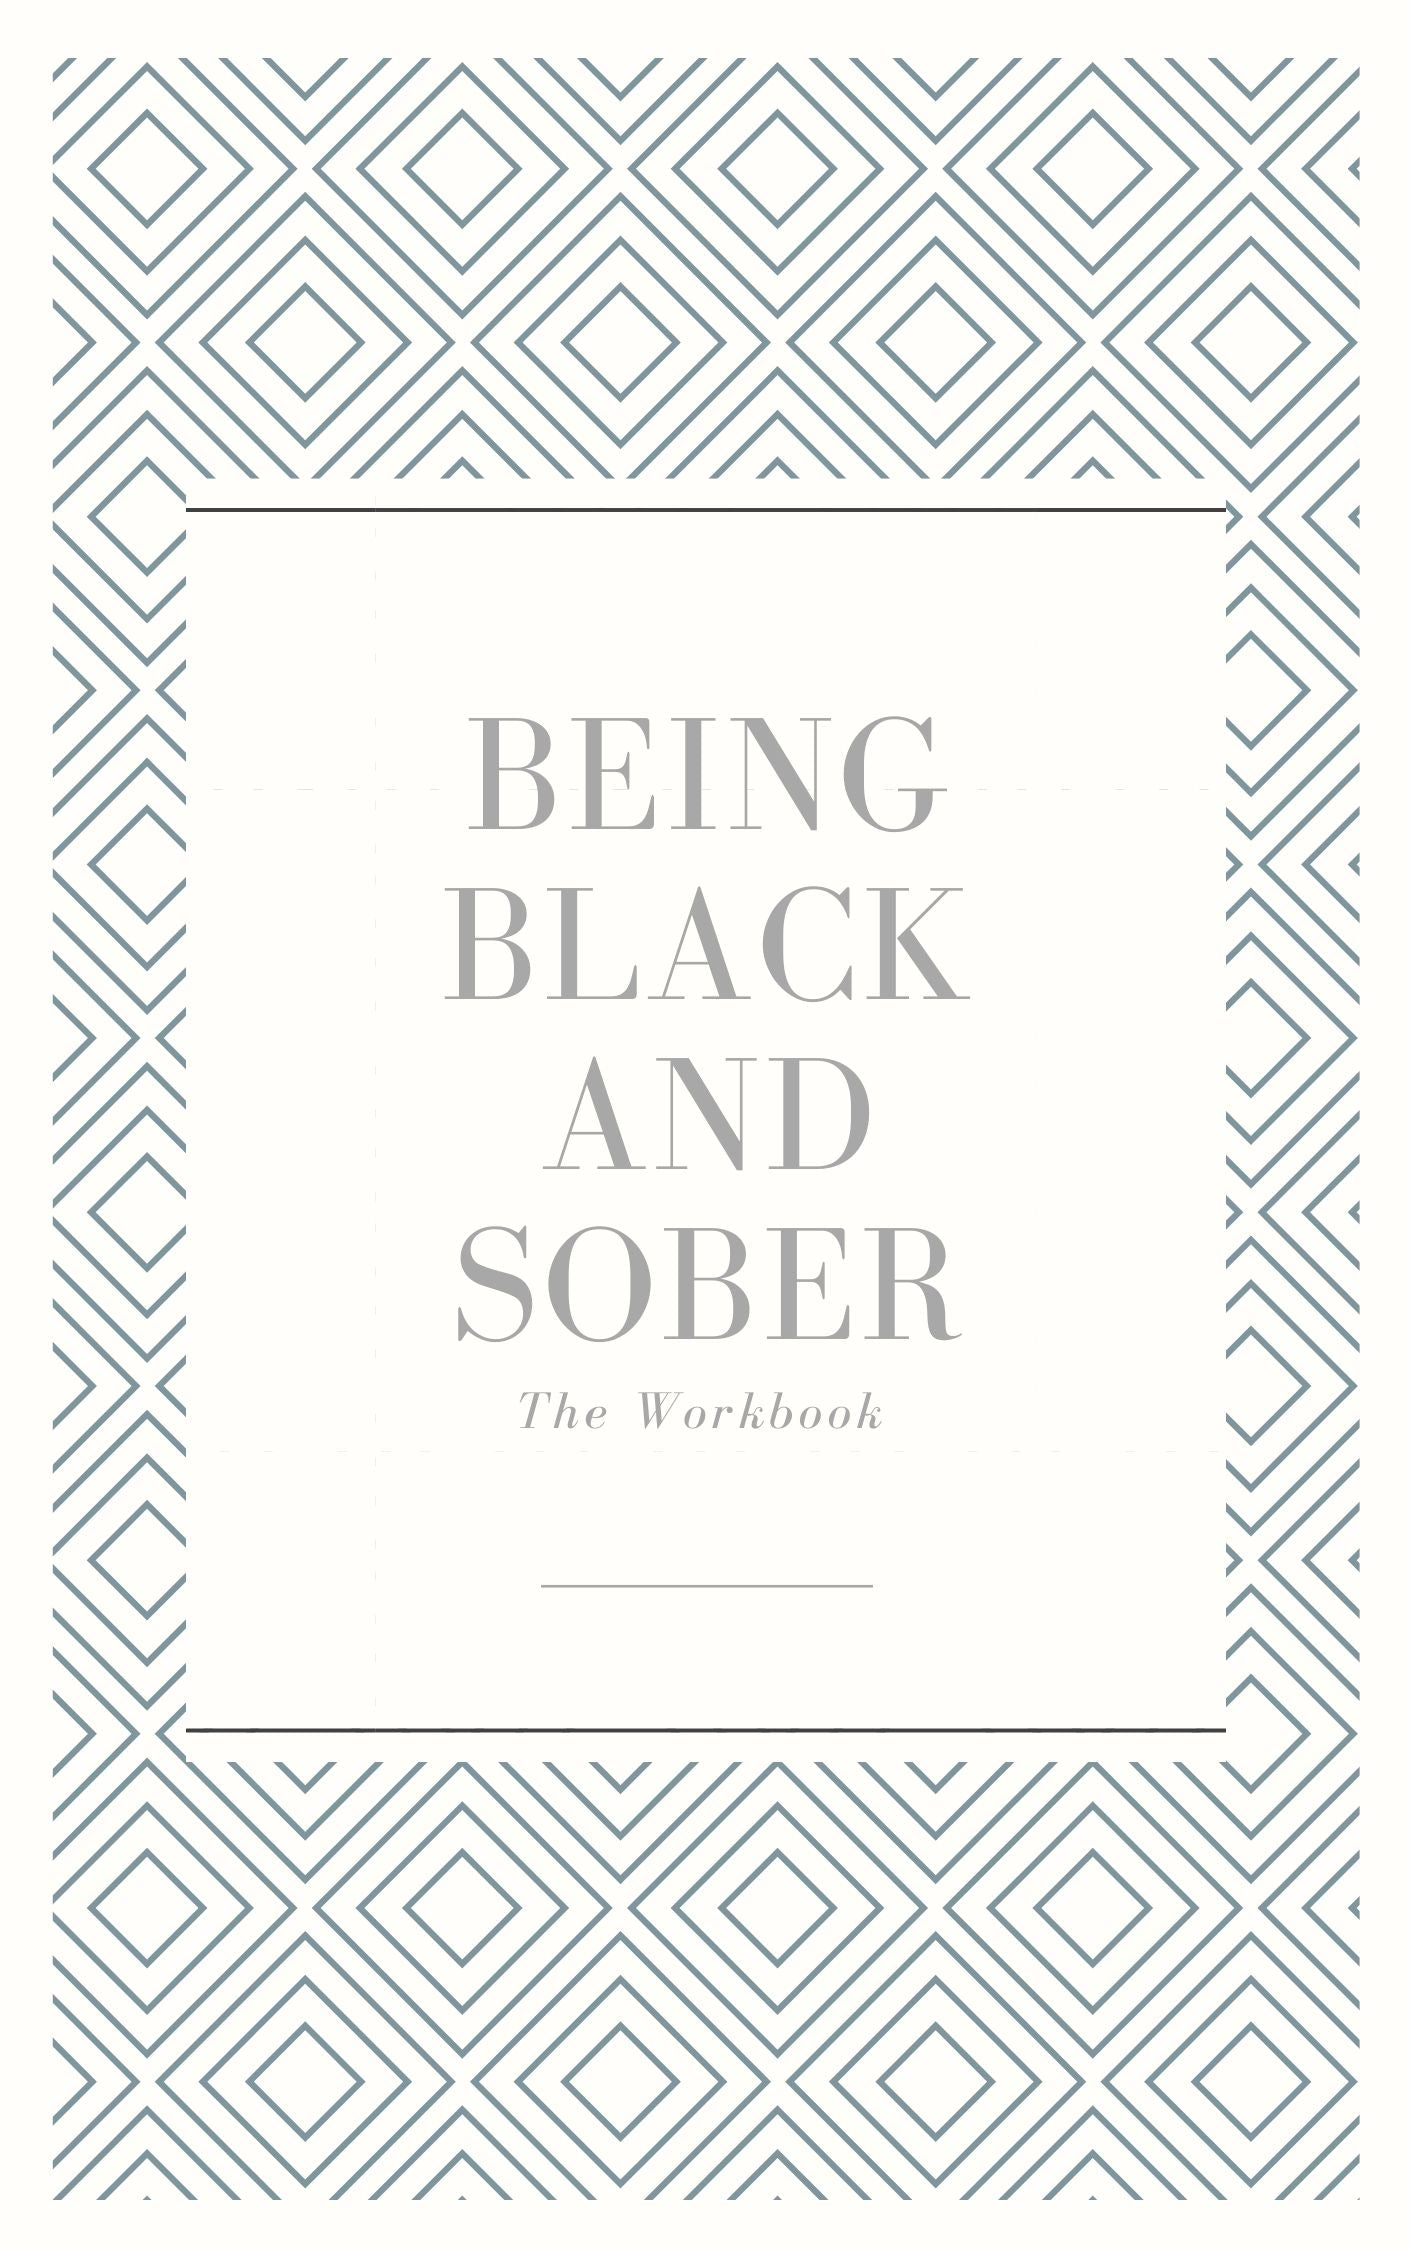 Being Black and Sober  Workbook